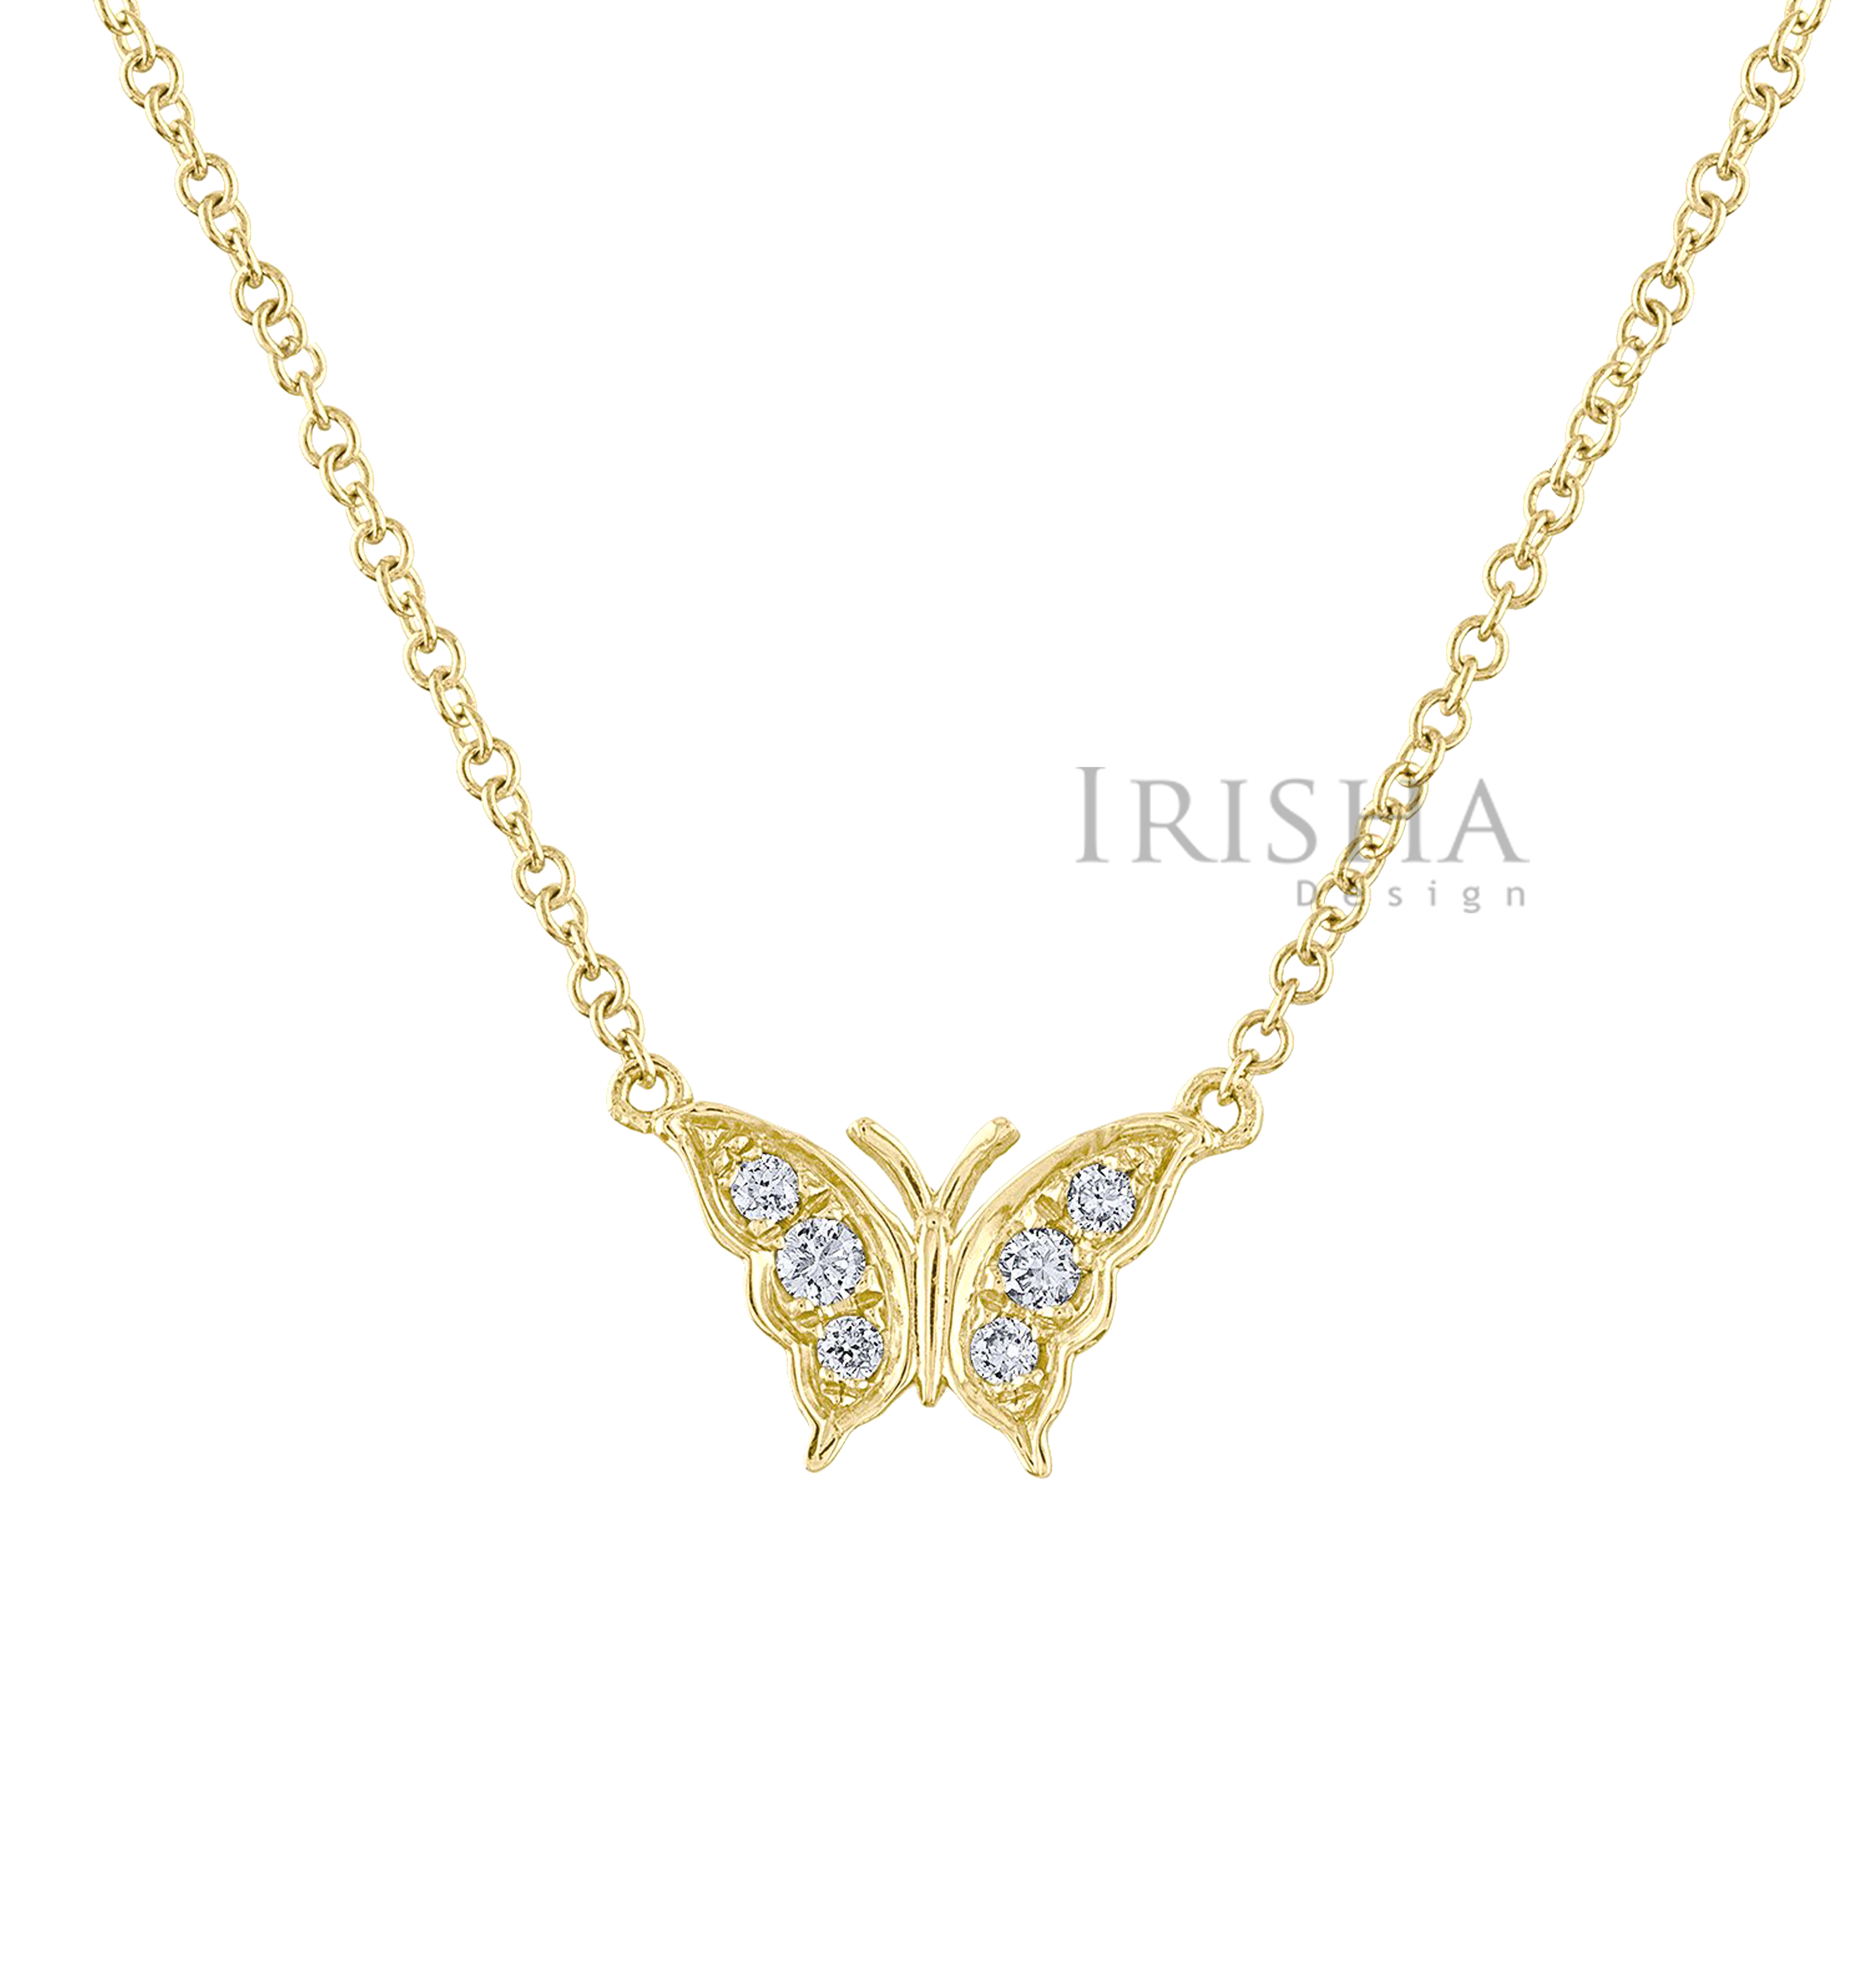 14K Gold 0.08 Ct. Genuine Diamond Butterfly Charm Pendant Necklace Jewelry